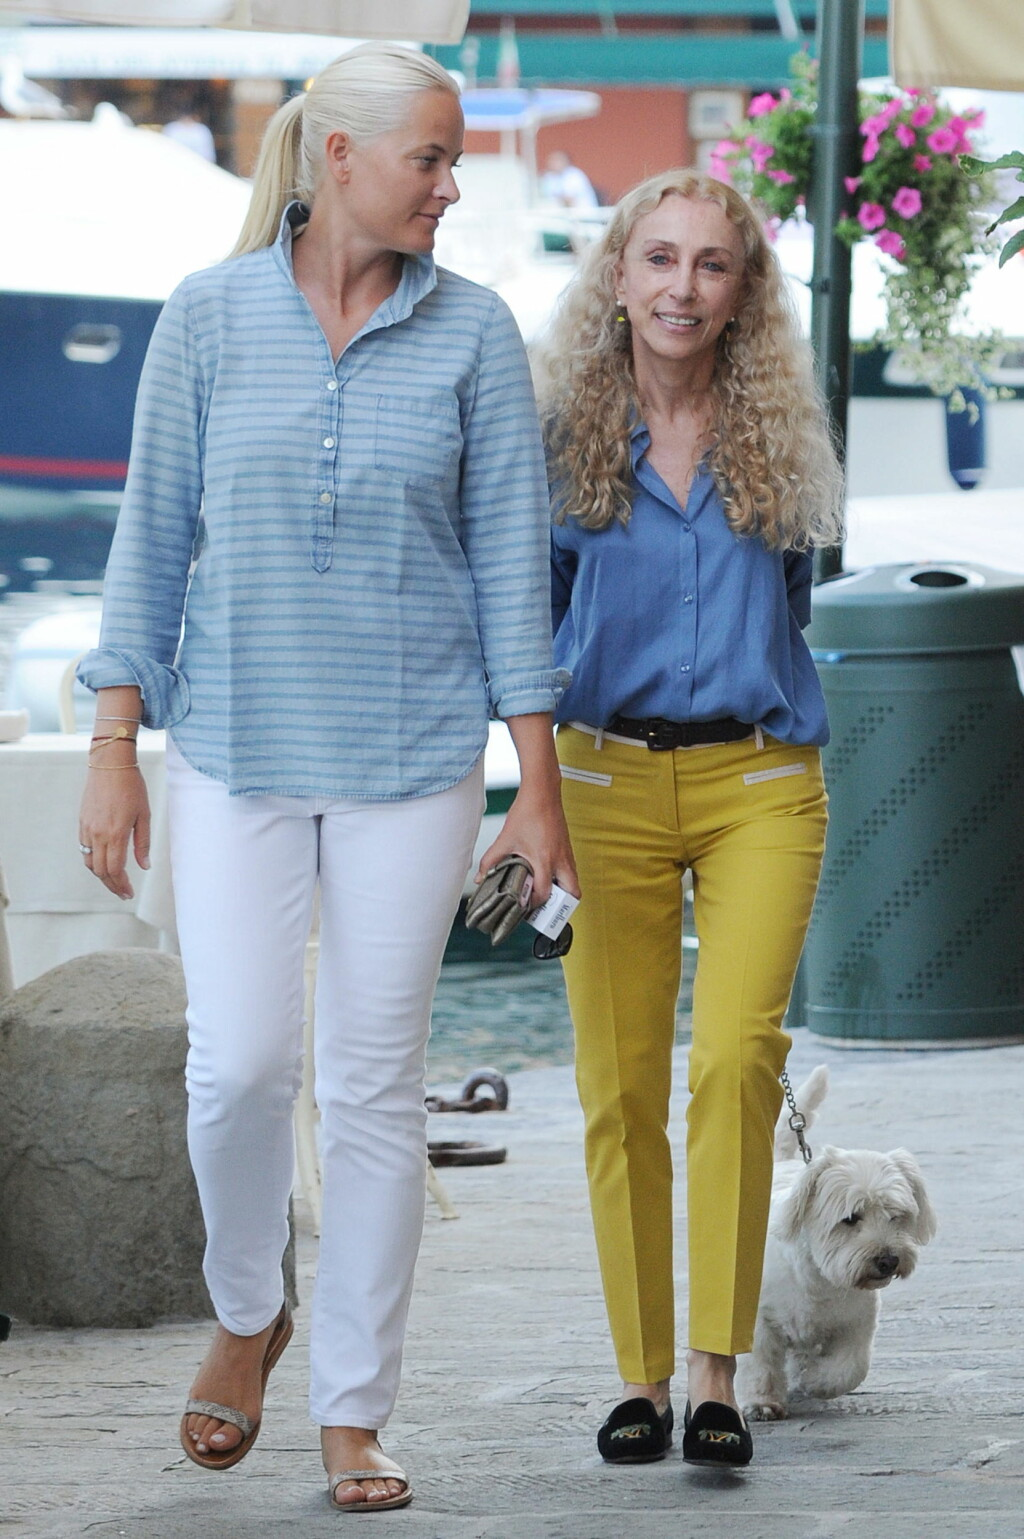 VENNINNEFERIE: Moteredaktør Franca Sozzani og Mette-Marit vandret gatelangs i Portofino og storkoste seg i sommervarmen. Foto: Splash News/ All Over Press